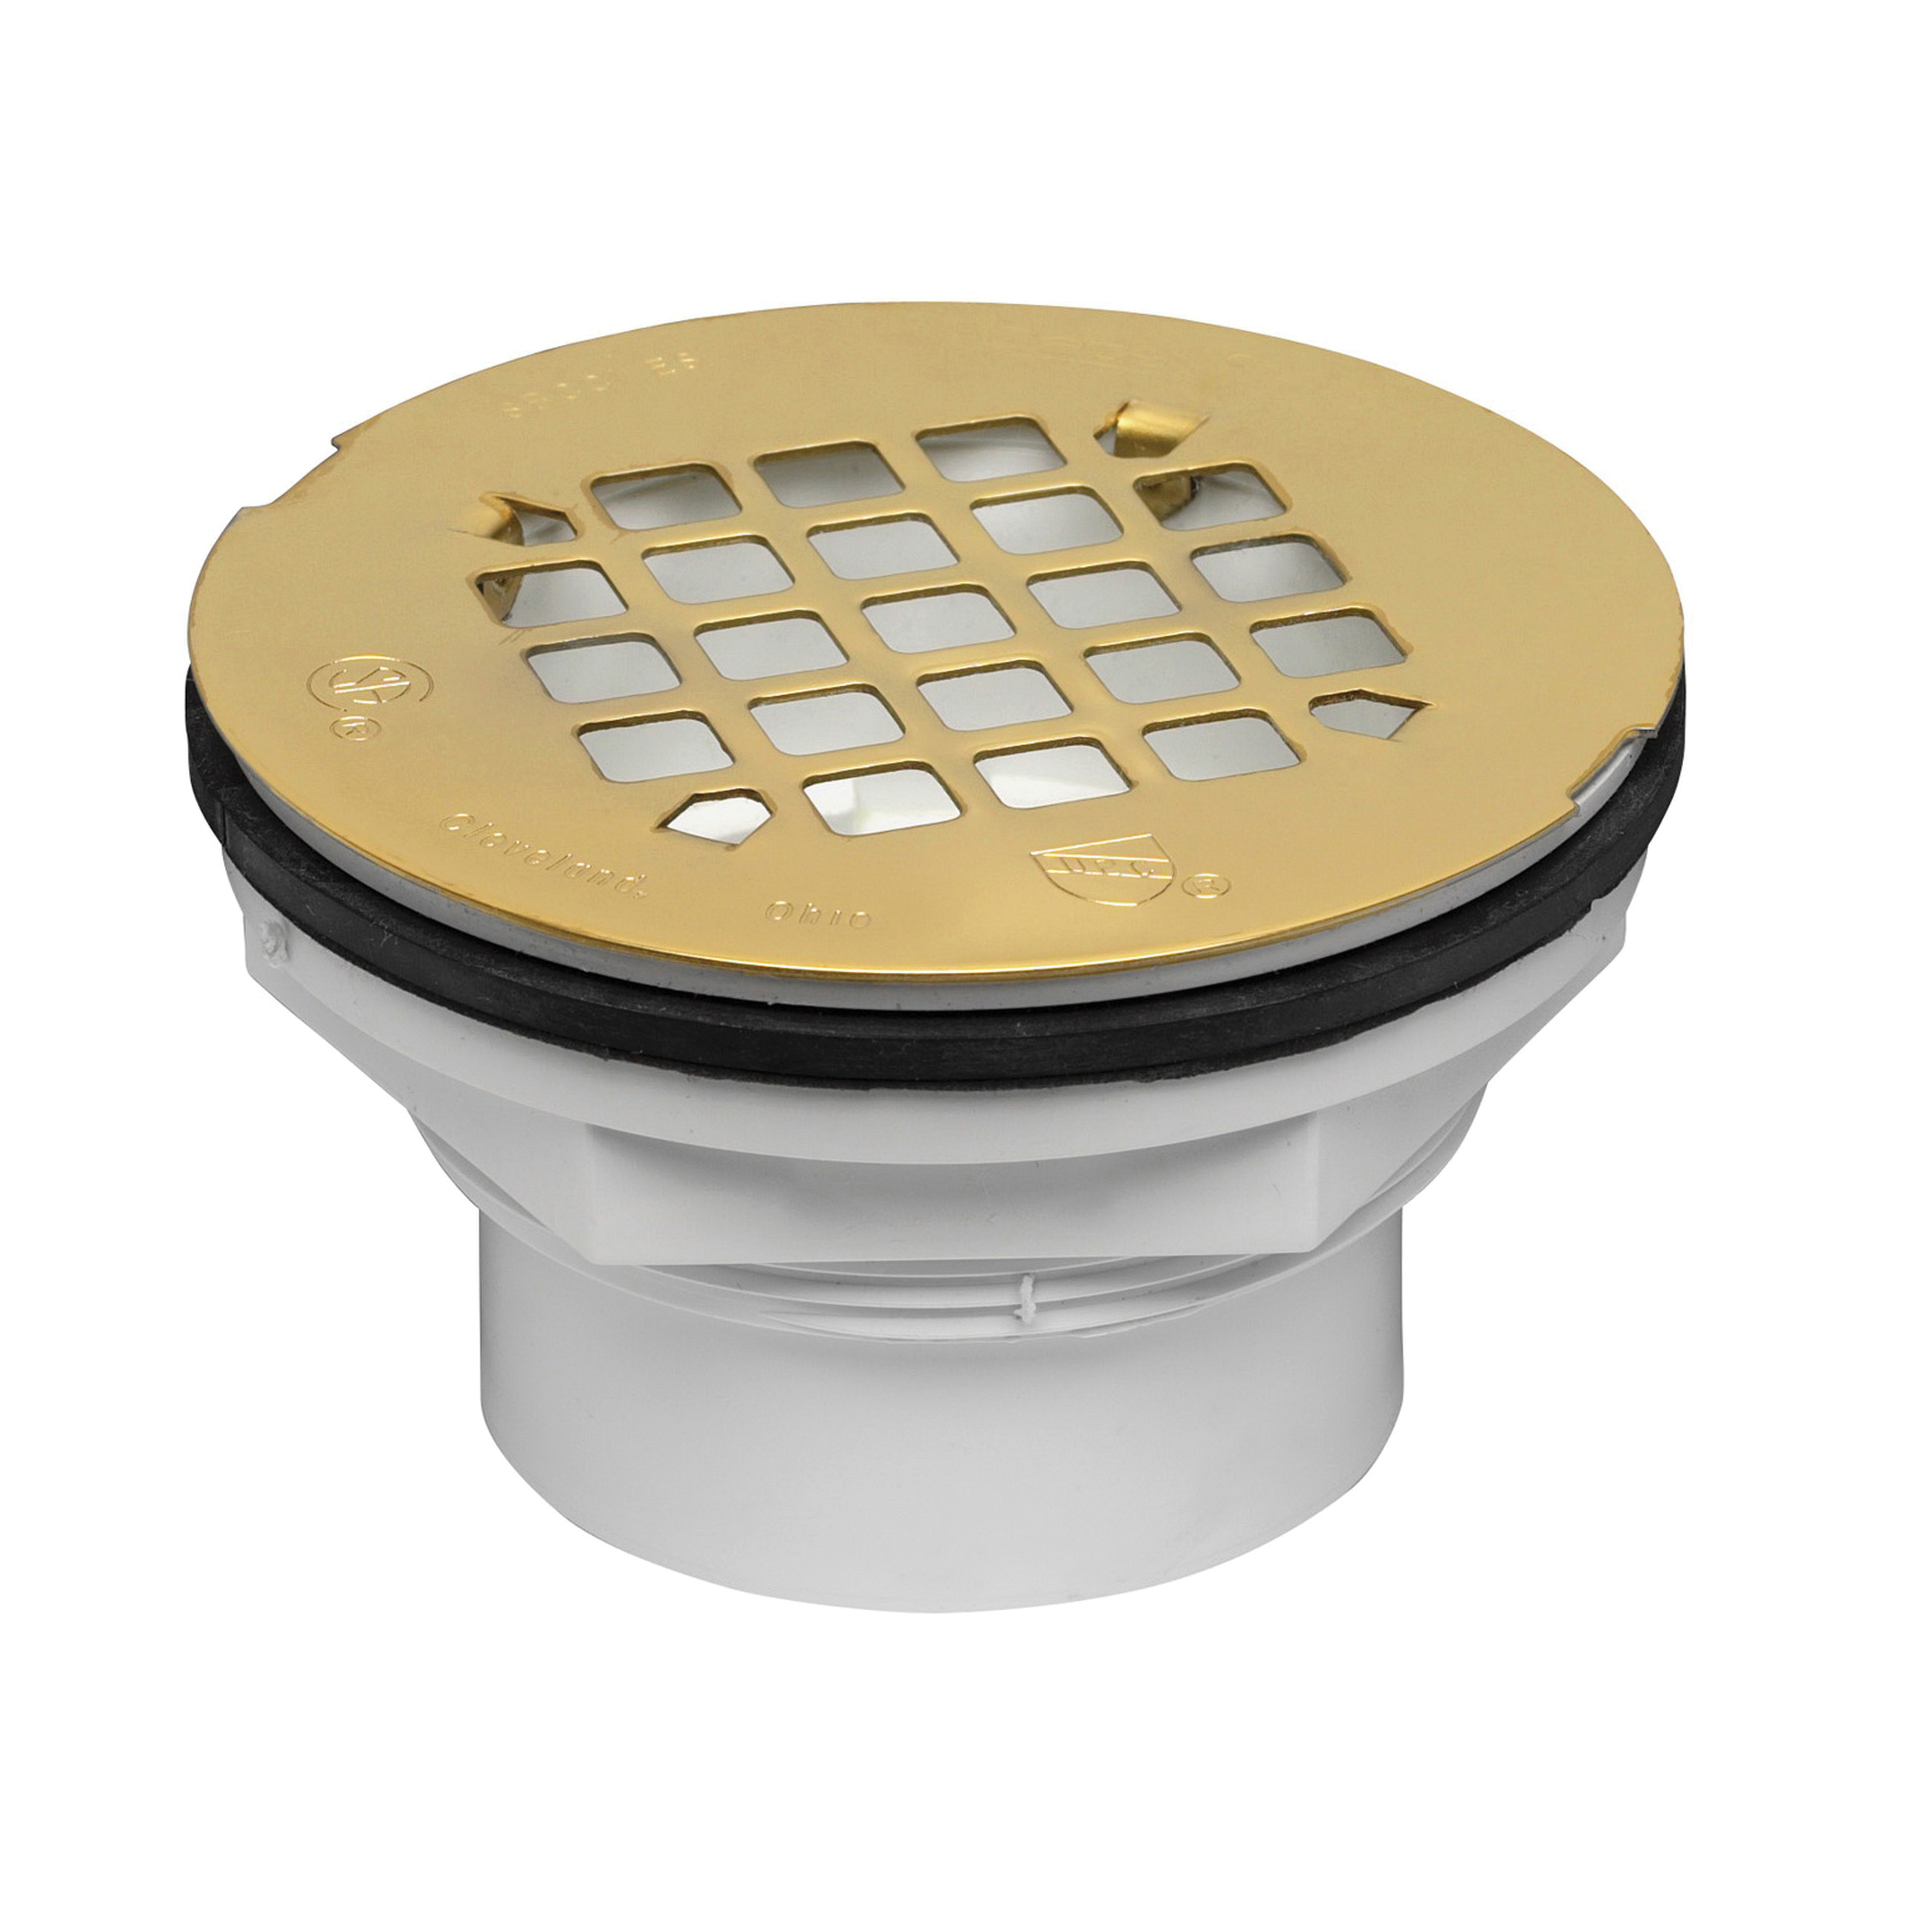 Oatey® 42097 101PS Shower Drain With Strainer, 2 in Nominal, Solvent Weld Connection, PVC Drain, Domestic